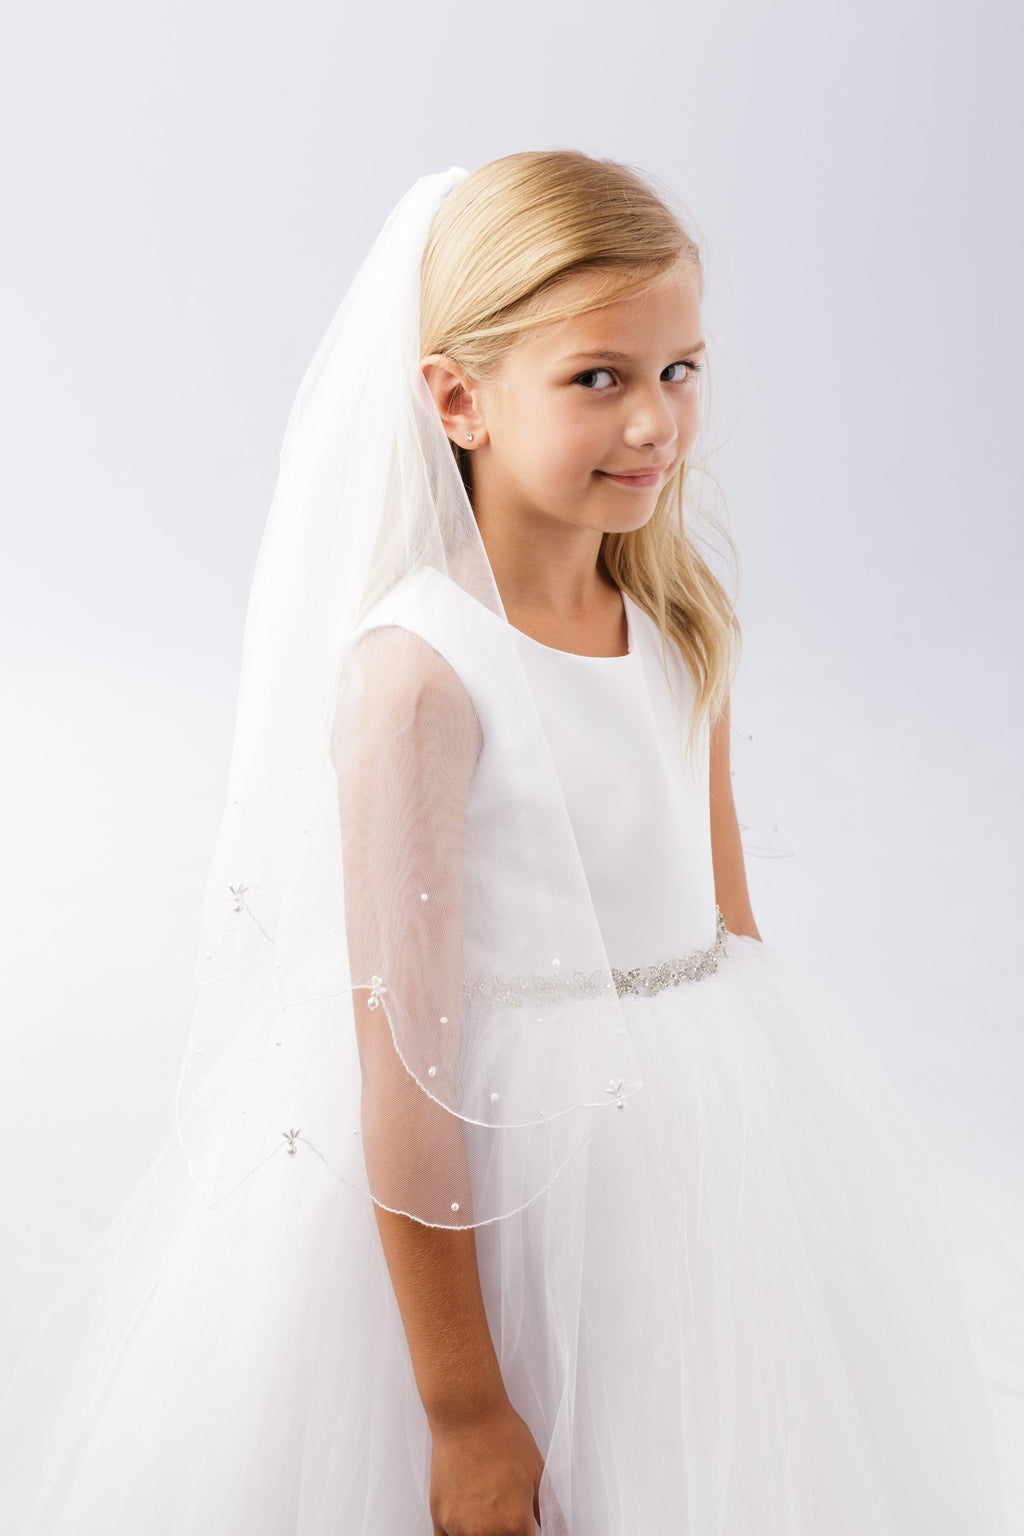 White Plain Veil with Scalloped Chord Edging and Pearl Drops